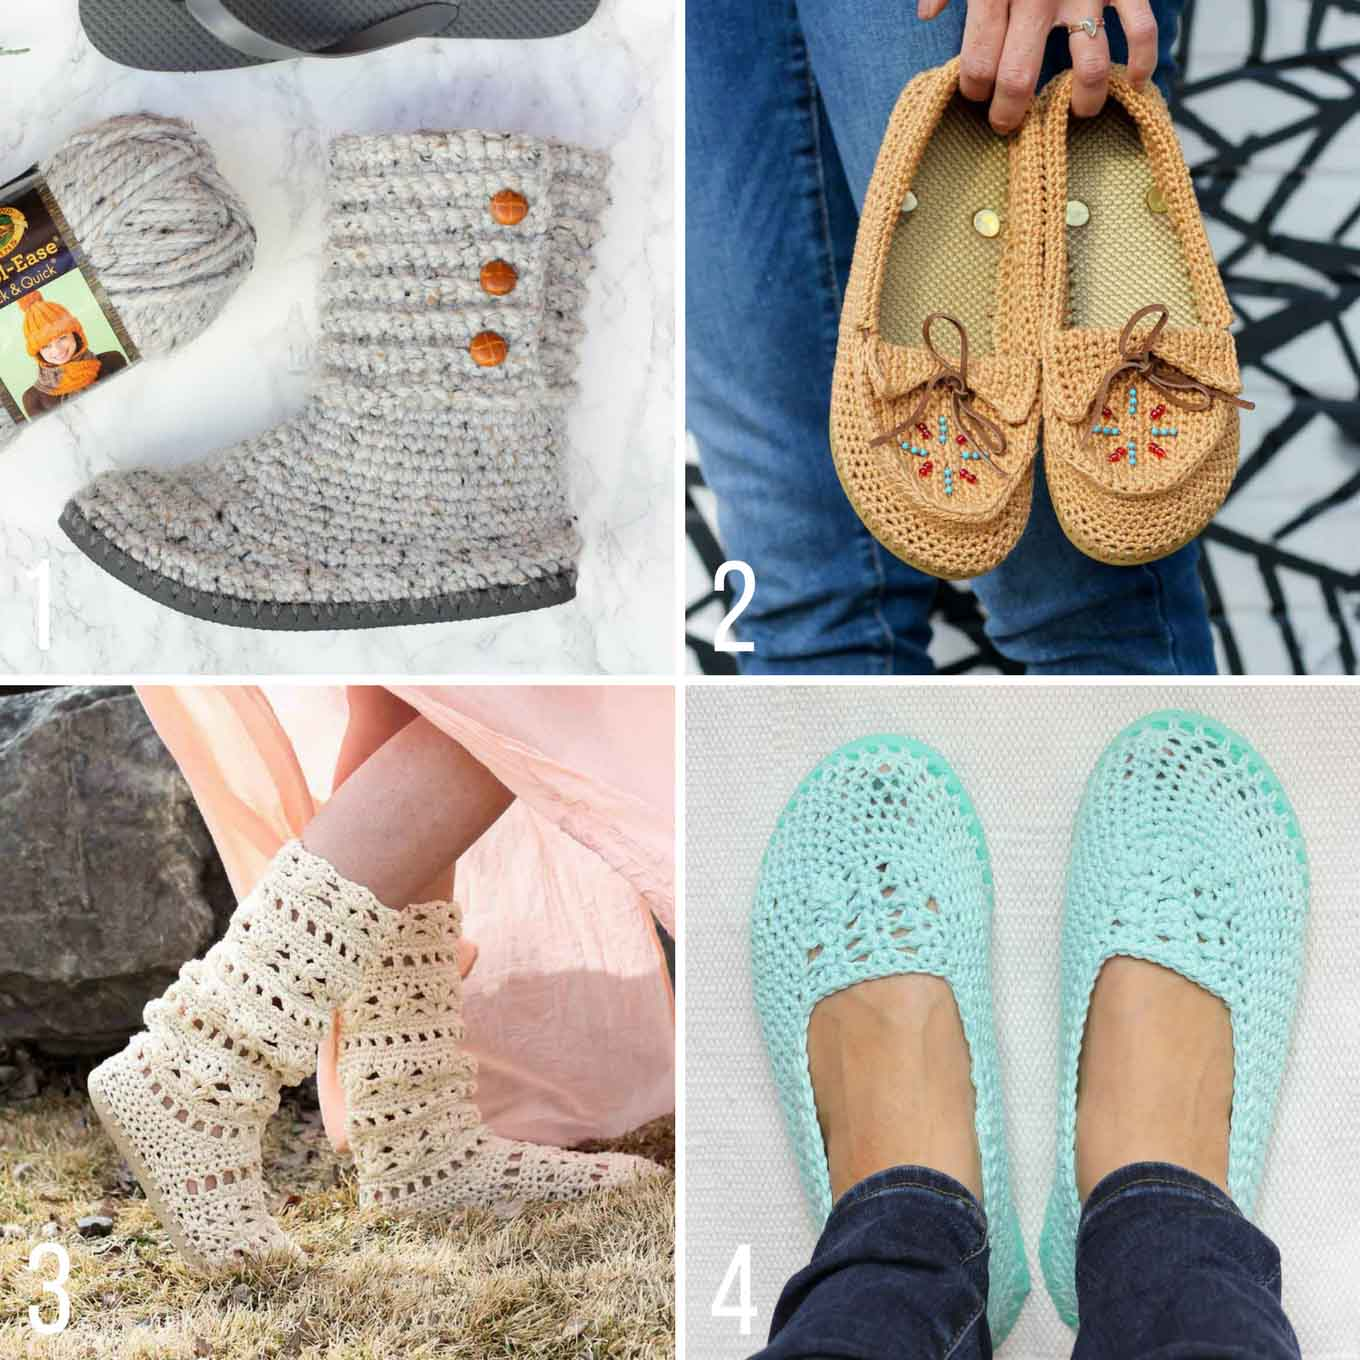 Free crochet patterns with flip flops soles from Make and Do Crew